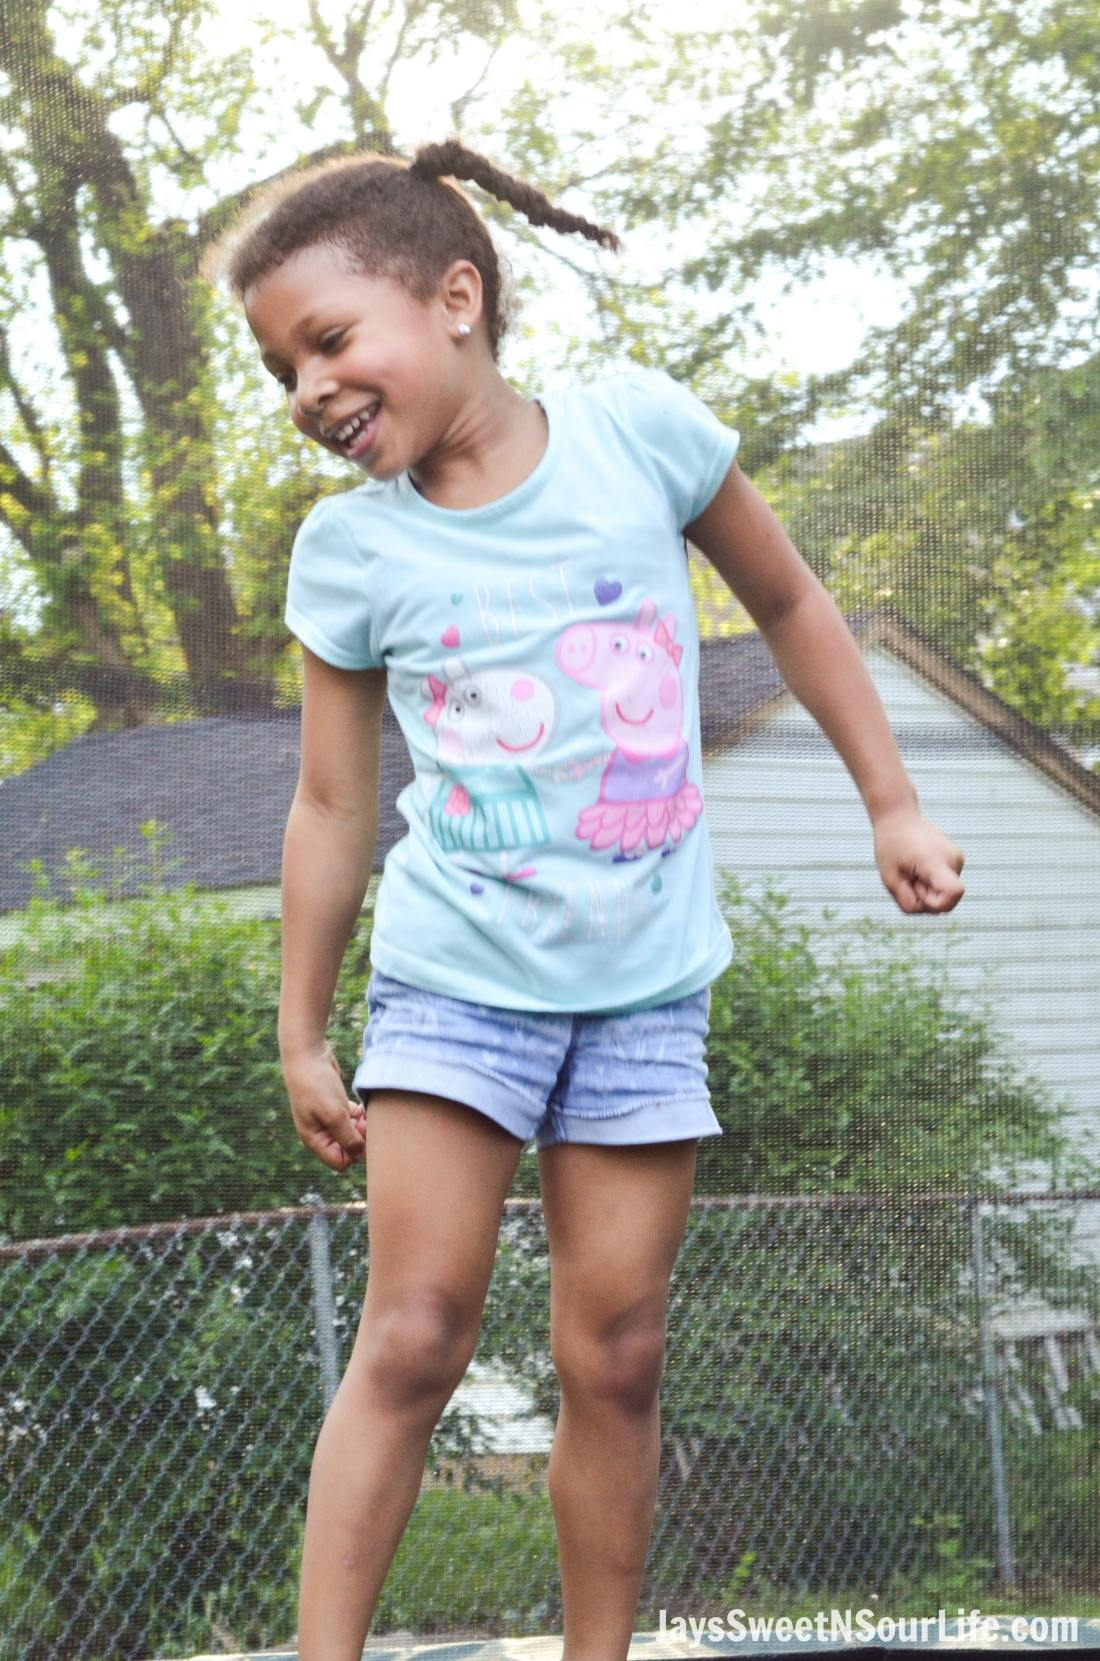 Little african american girl smiling and jumping on a trampoline. Attending a Beach Sundae Party.